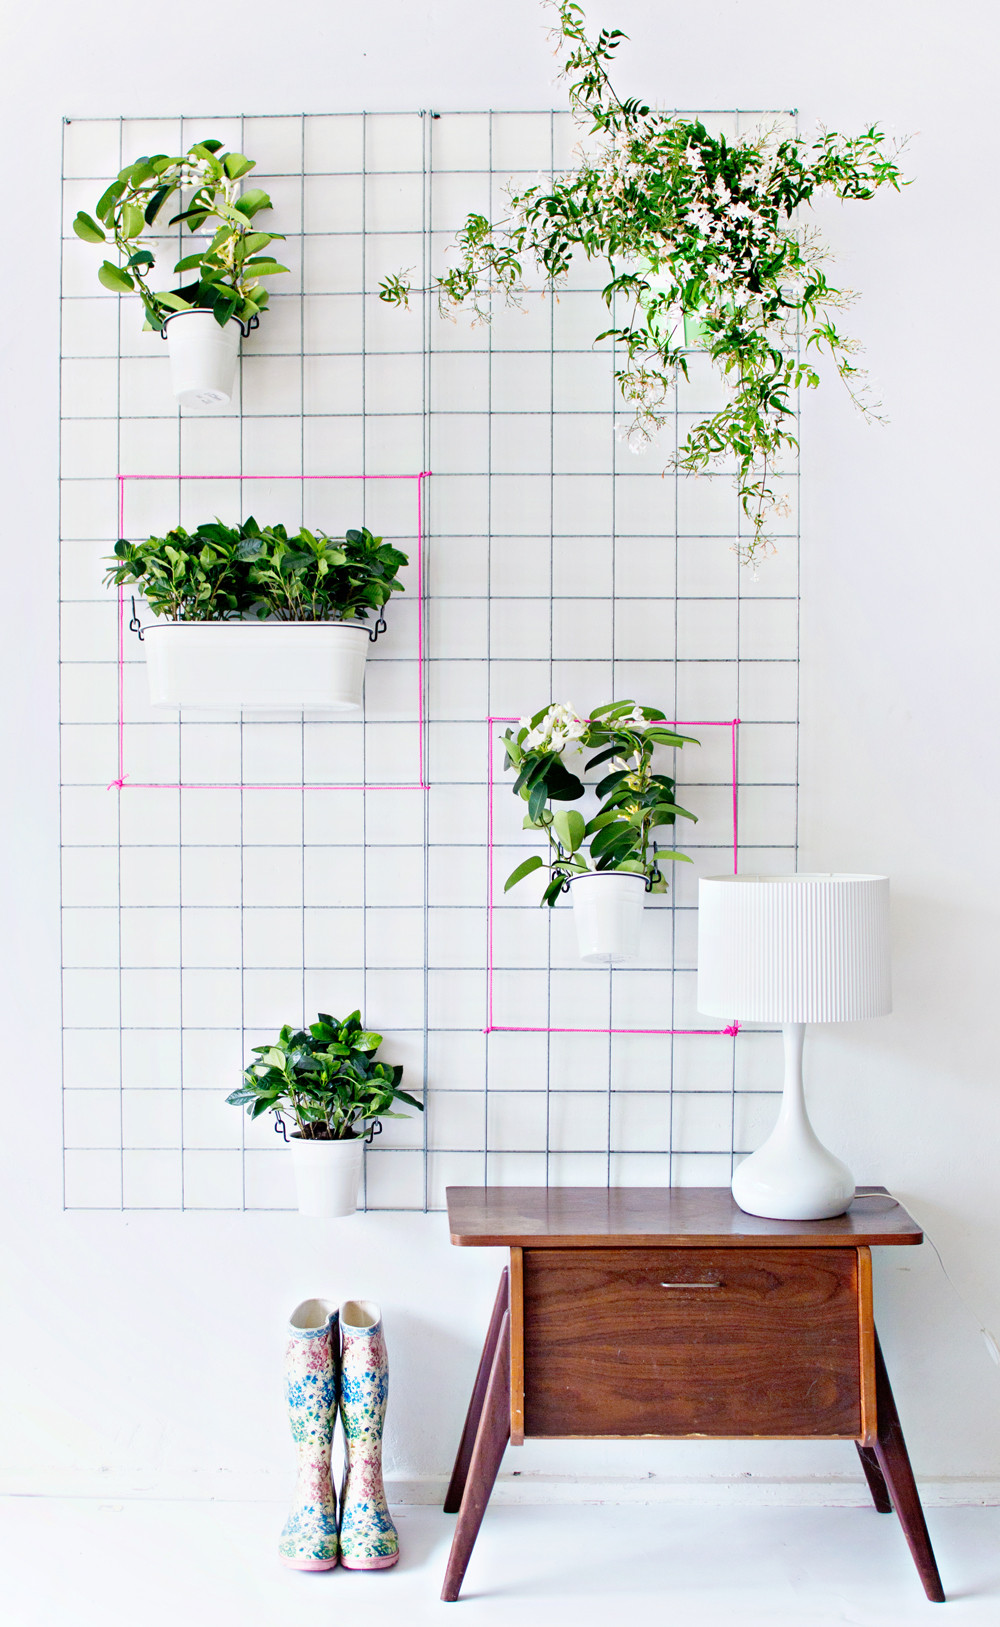 Best ideas about DIY Wall Planter . Save or Pin GREEN DIY Now.